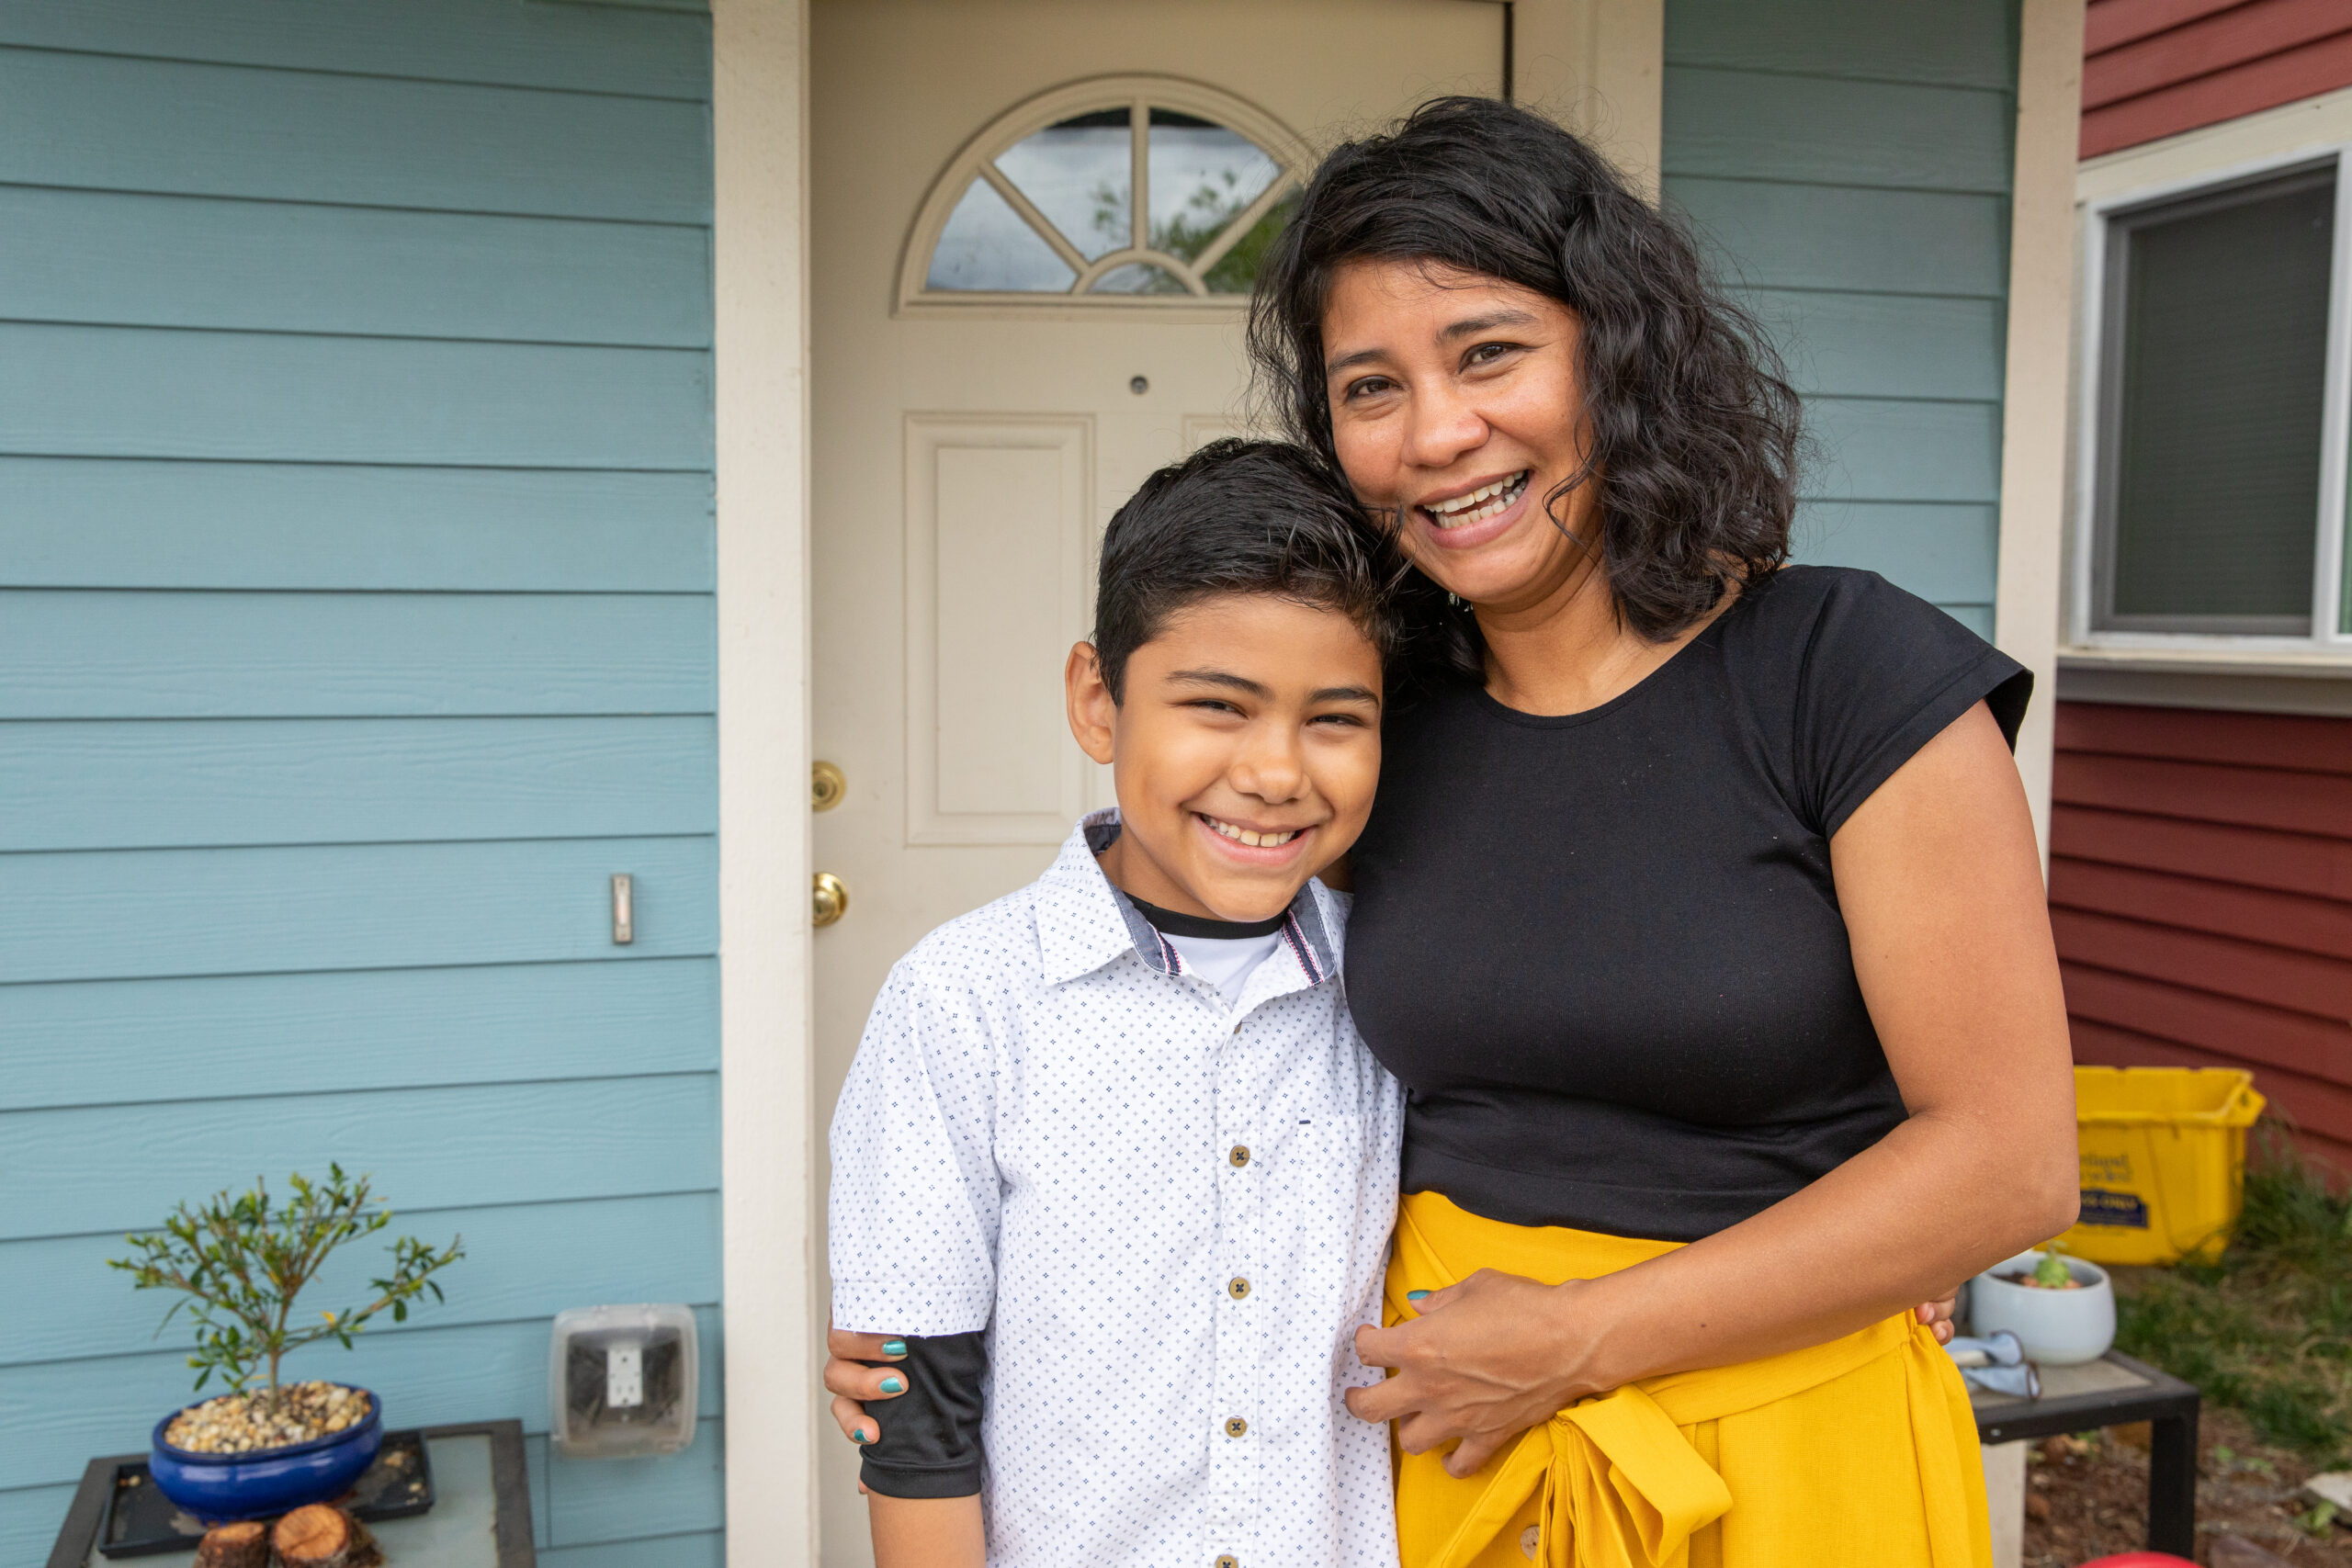 PORTLAND, OREGON (07/26/2019)-Lizet Molina Neri and her son, Alan (9), in front of the Habitat home that she helped build. ©Habitat for Humanity International/Jason Asteros